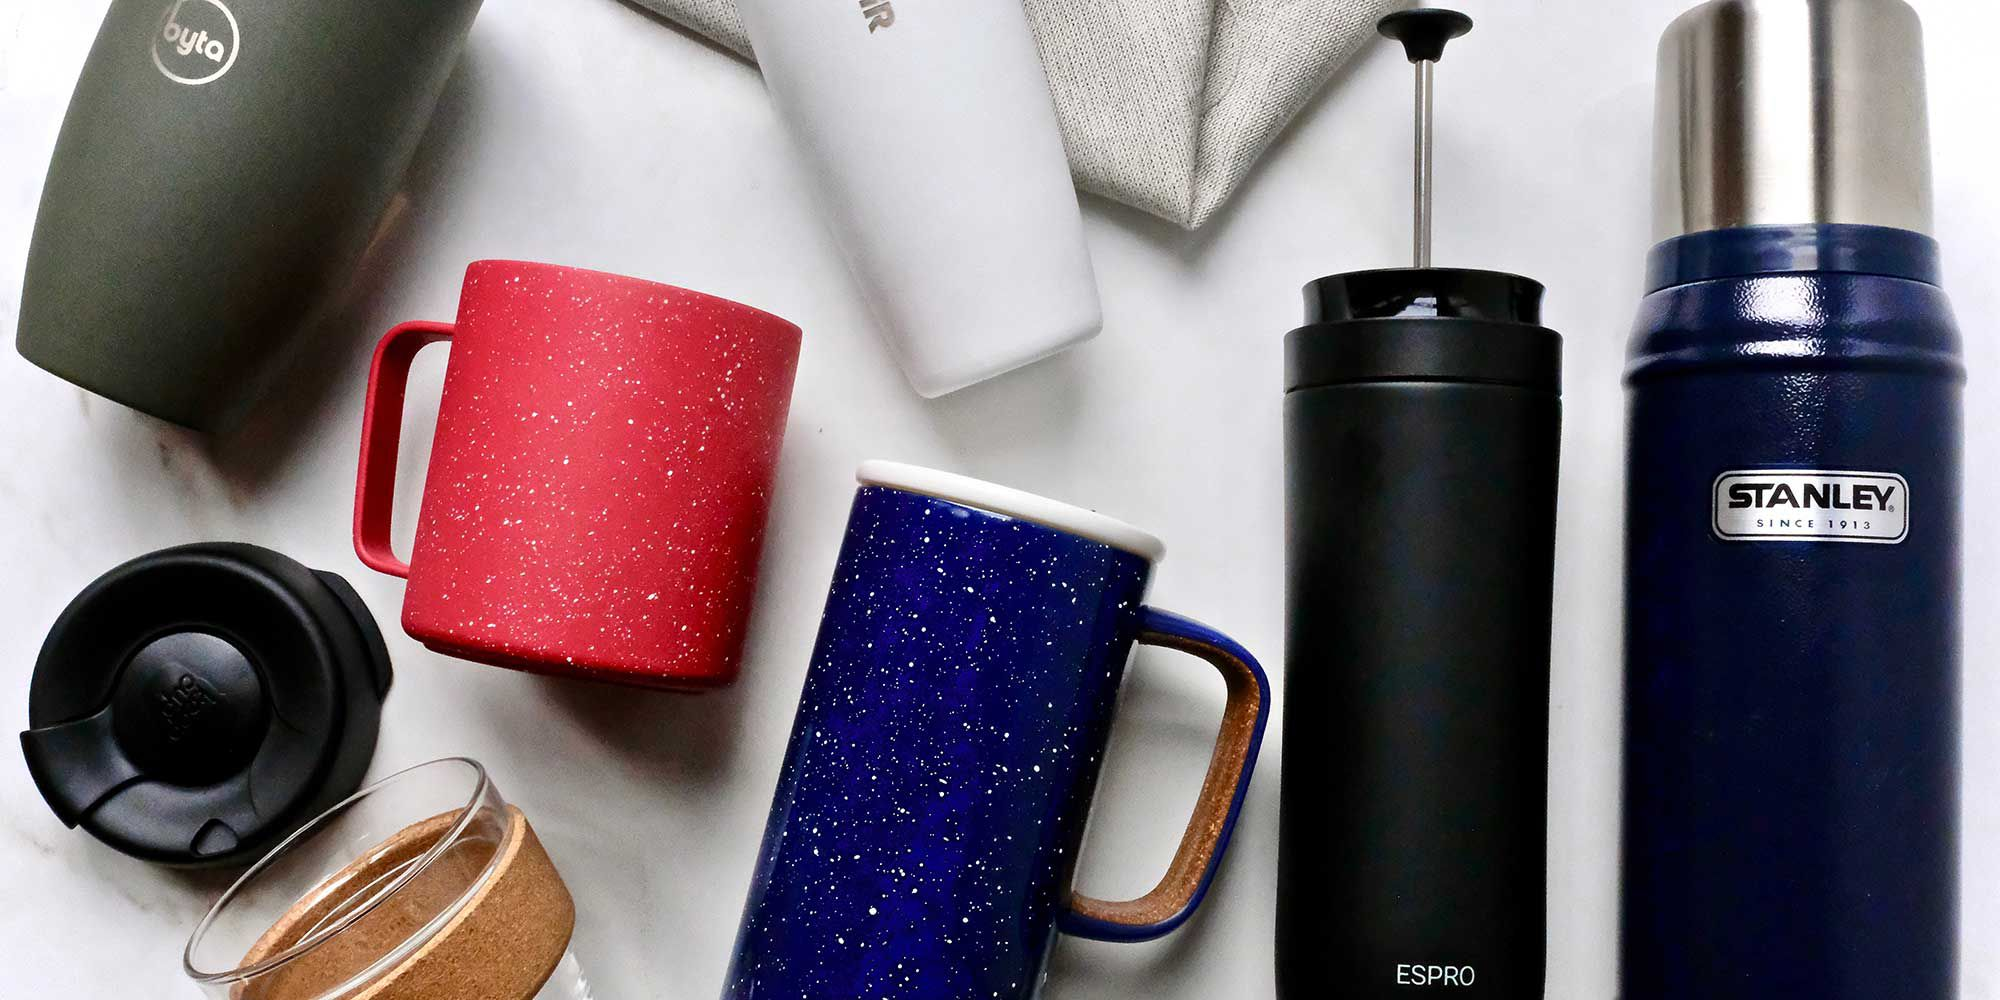 Our Guide To The Most Stylish And Functional Travel Mugs Saveur